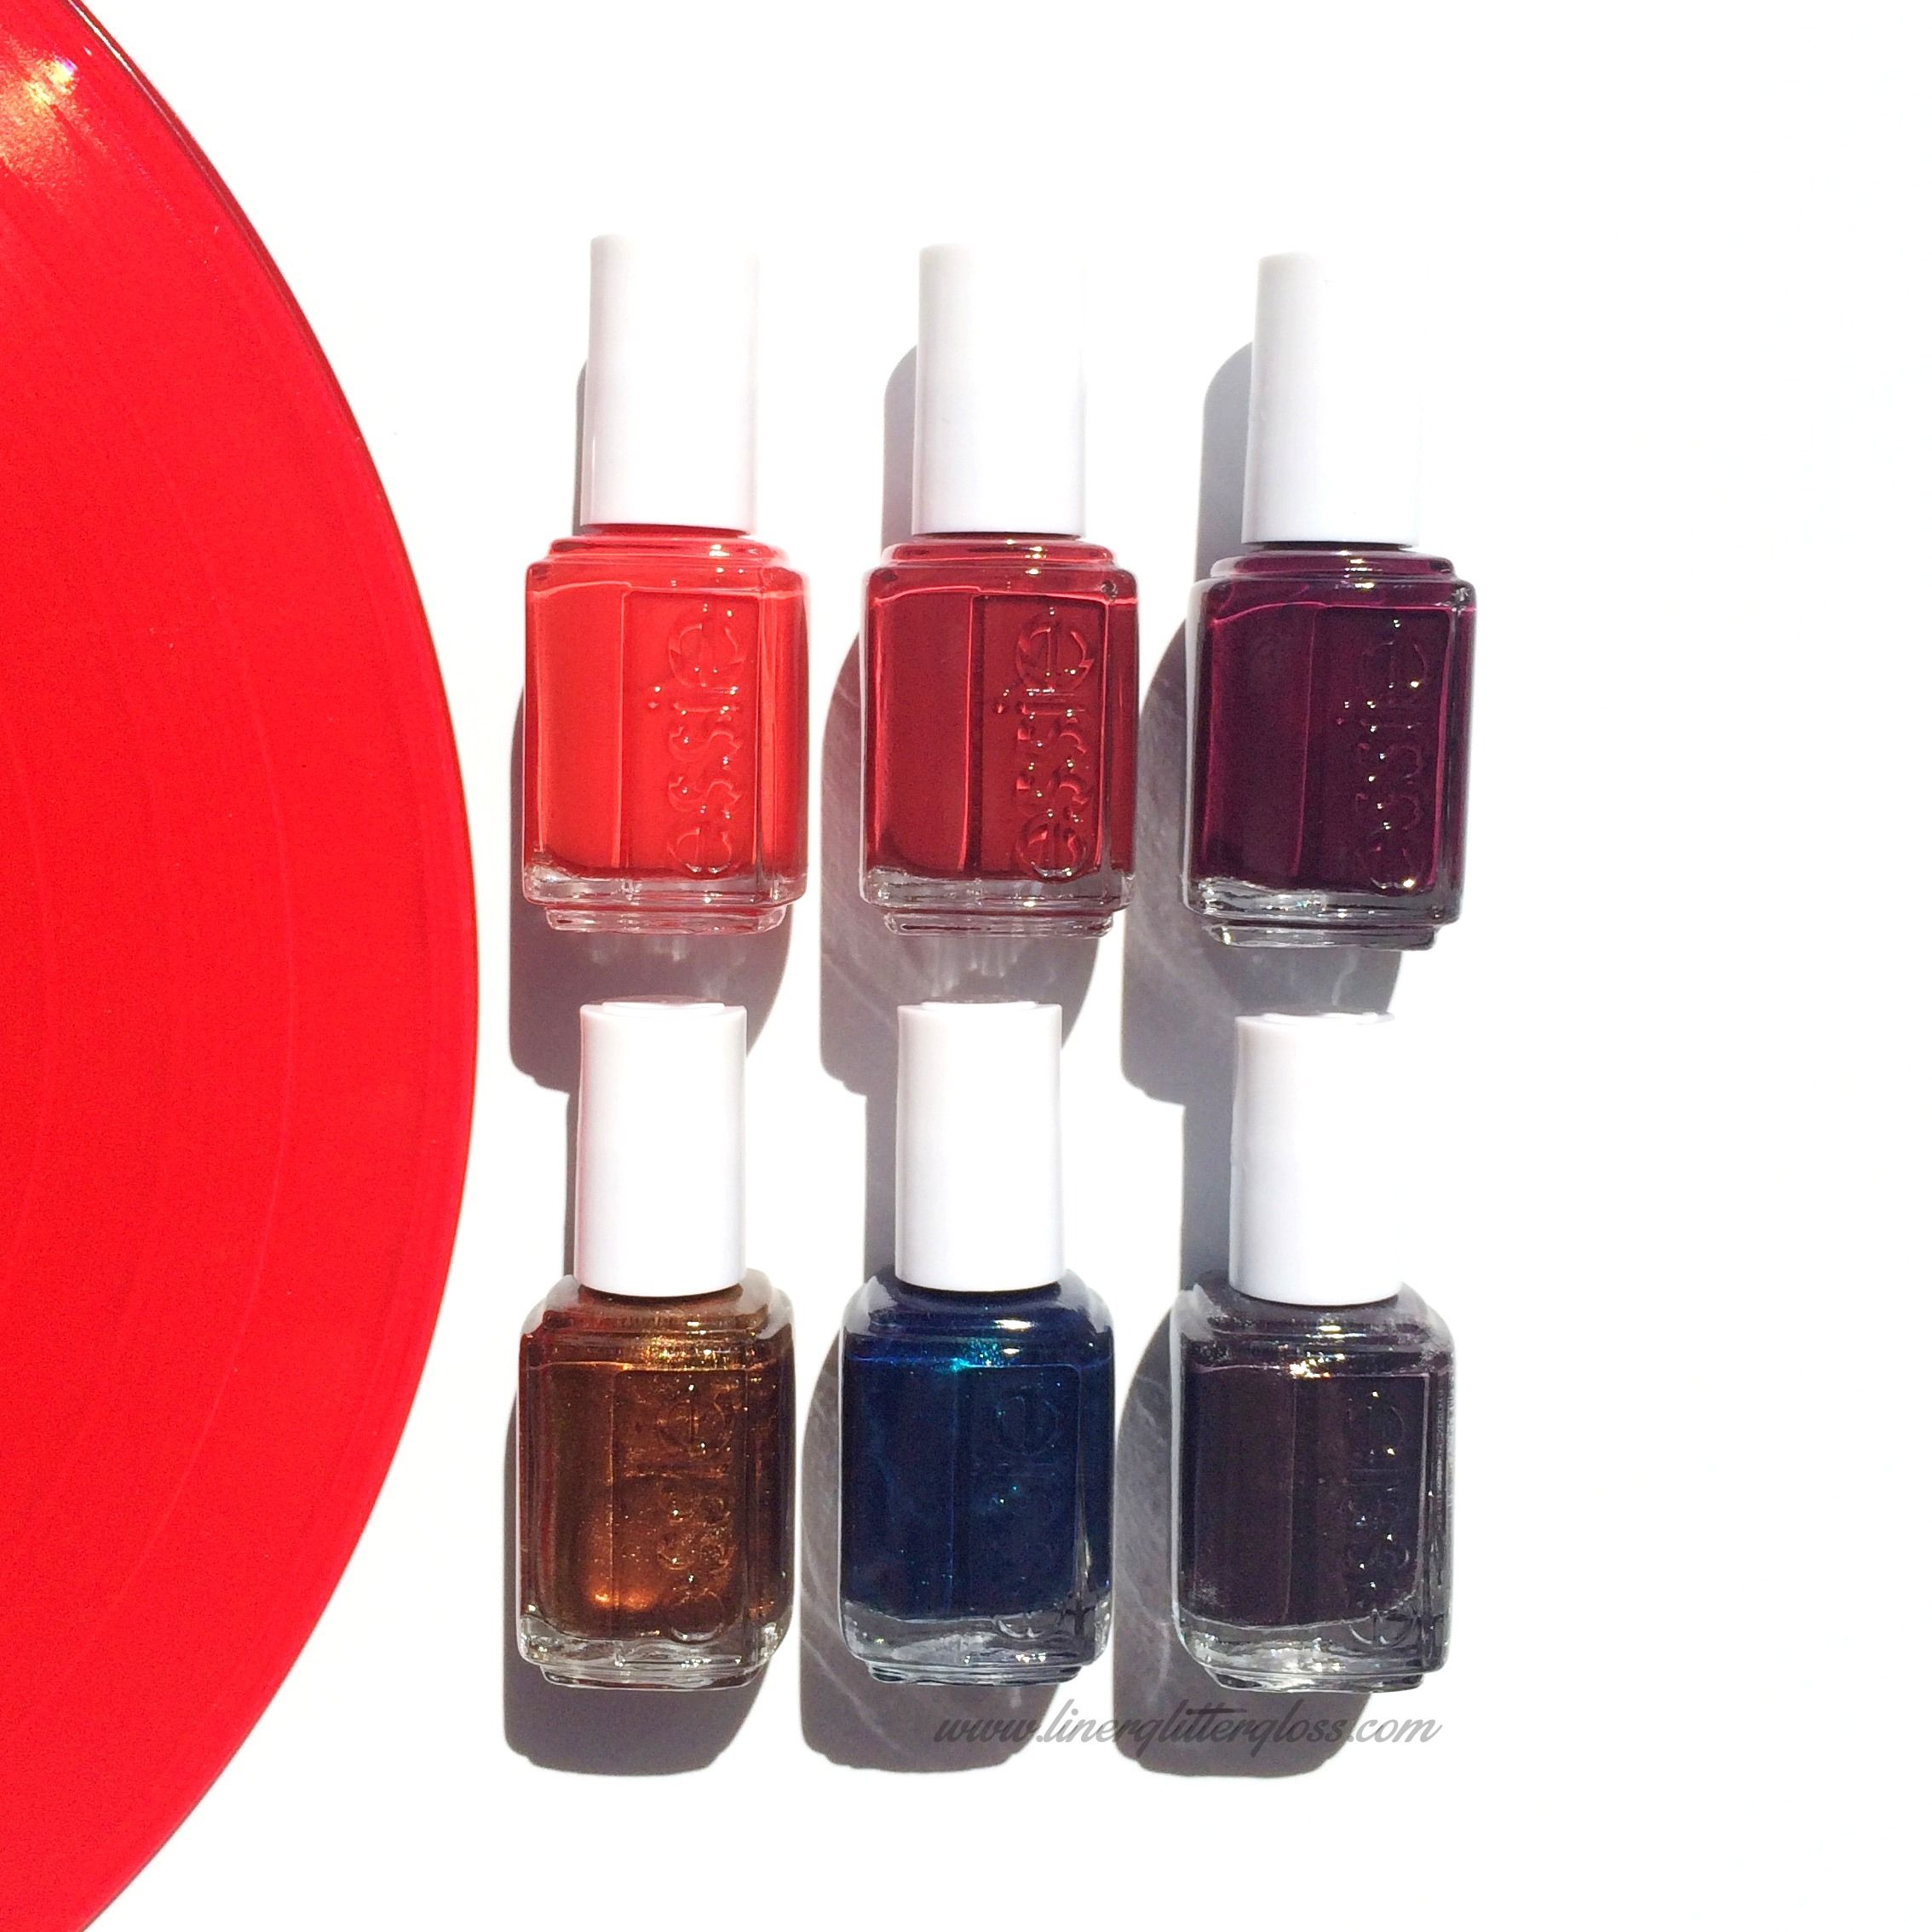 Essie Fall 2015 Collection Review & Swatches | Swatch and Nail ...